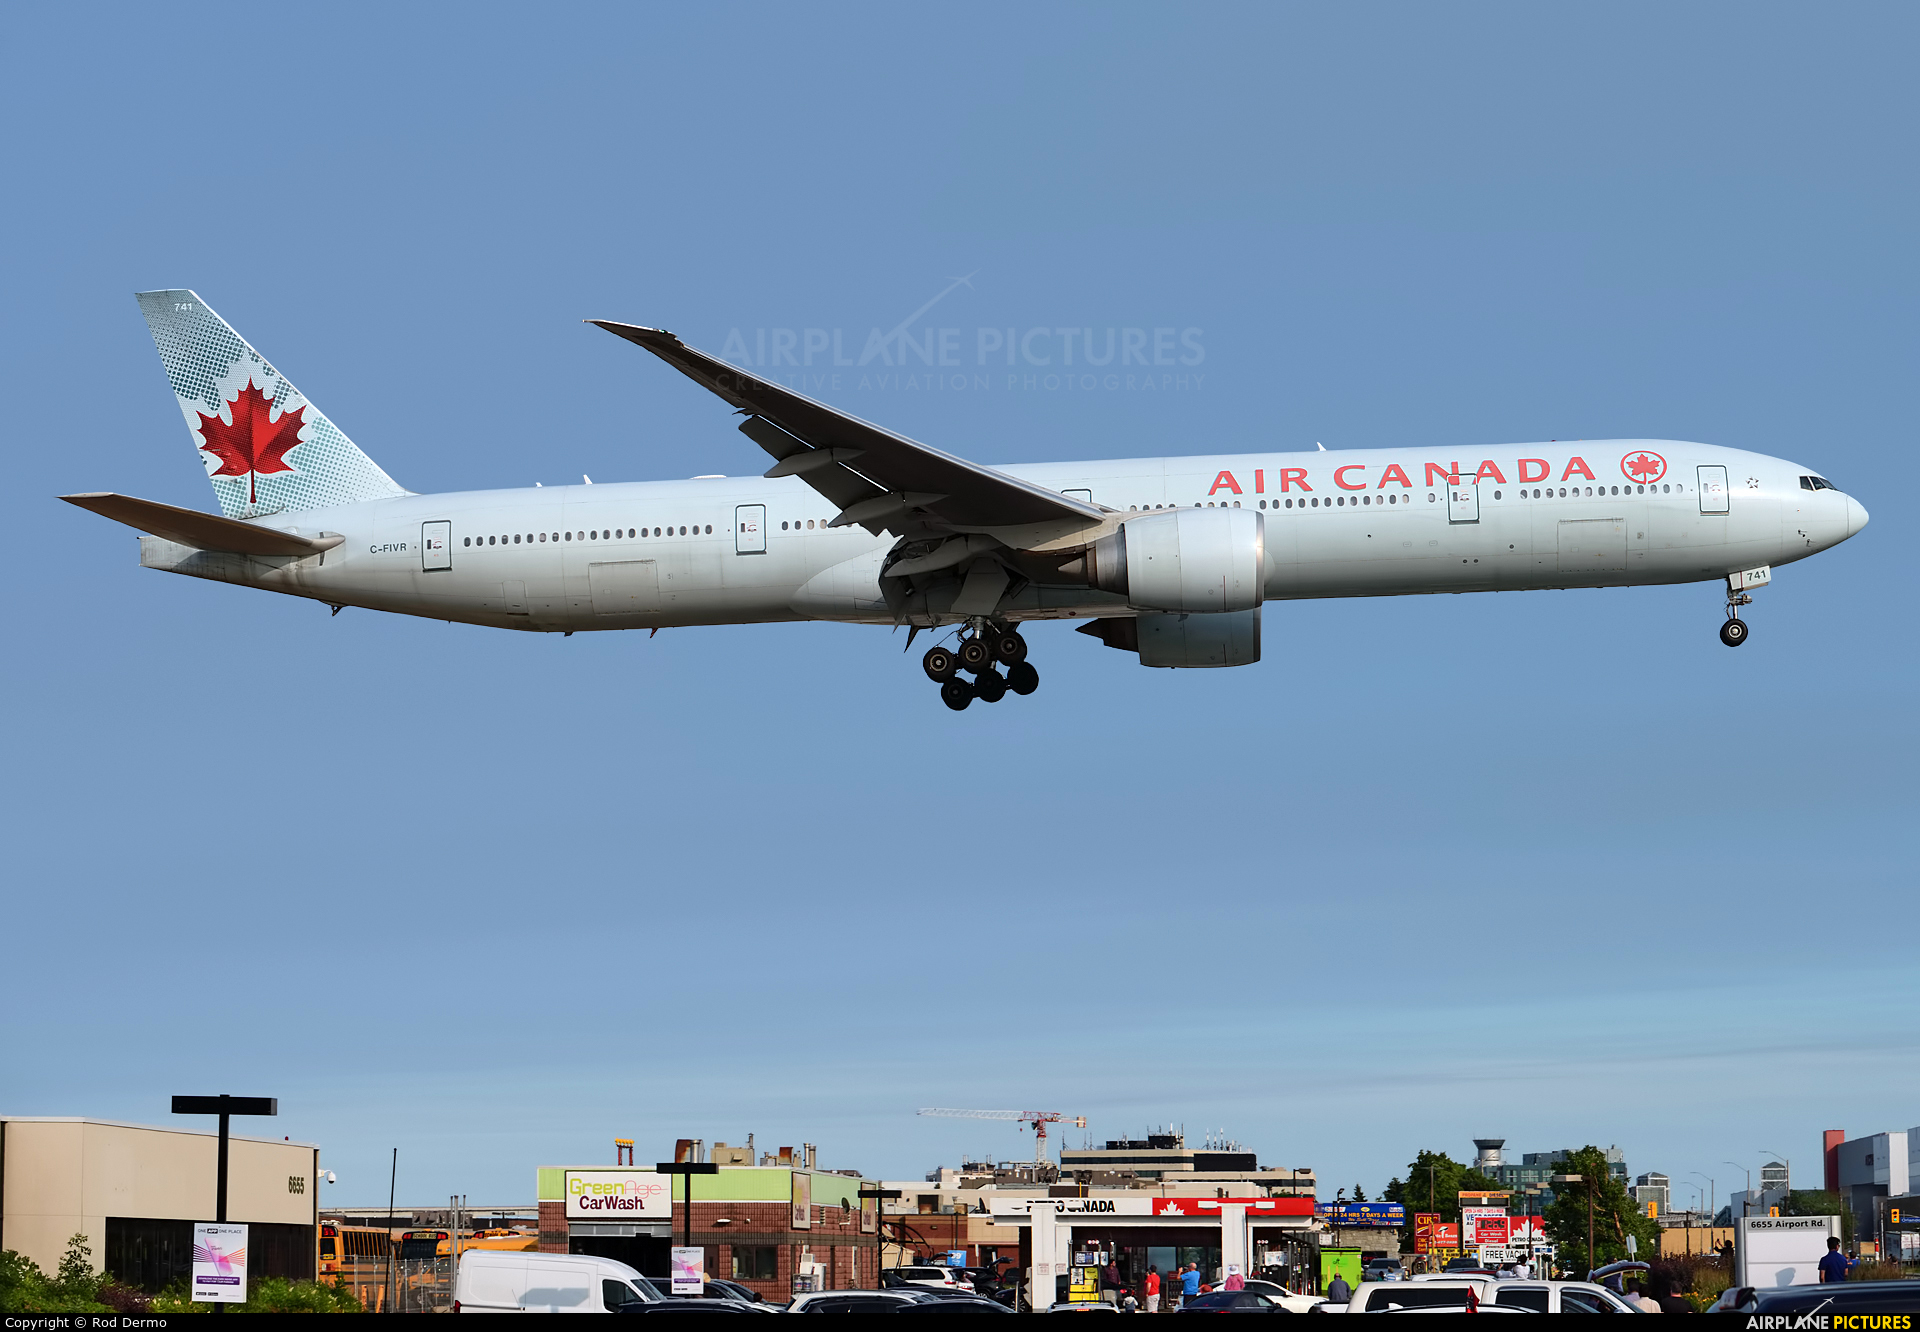 Air Canada C-FIVR aircraft at Toronto - Pearson Intl, ON